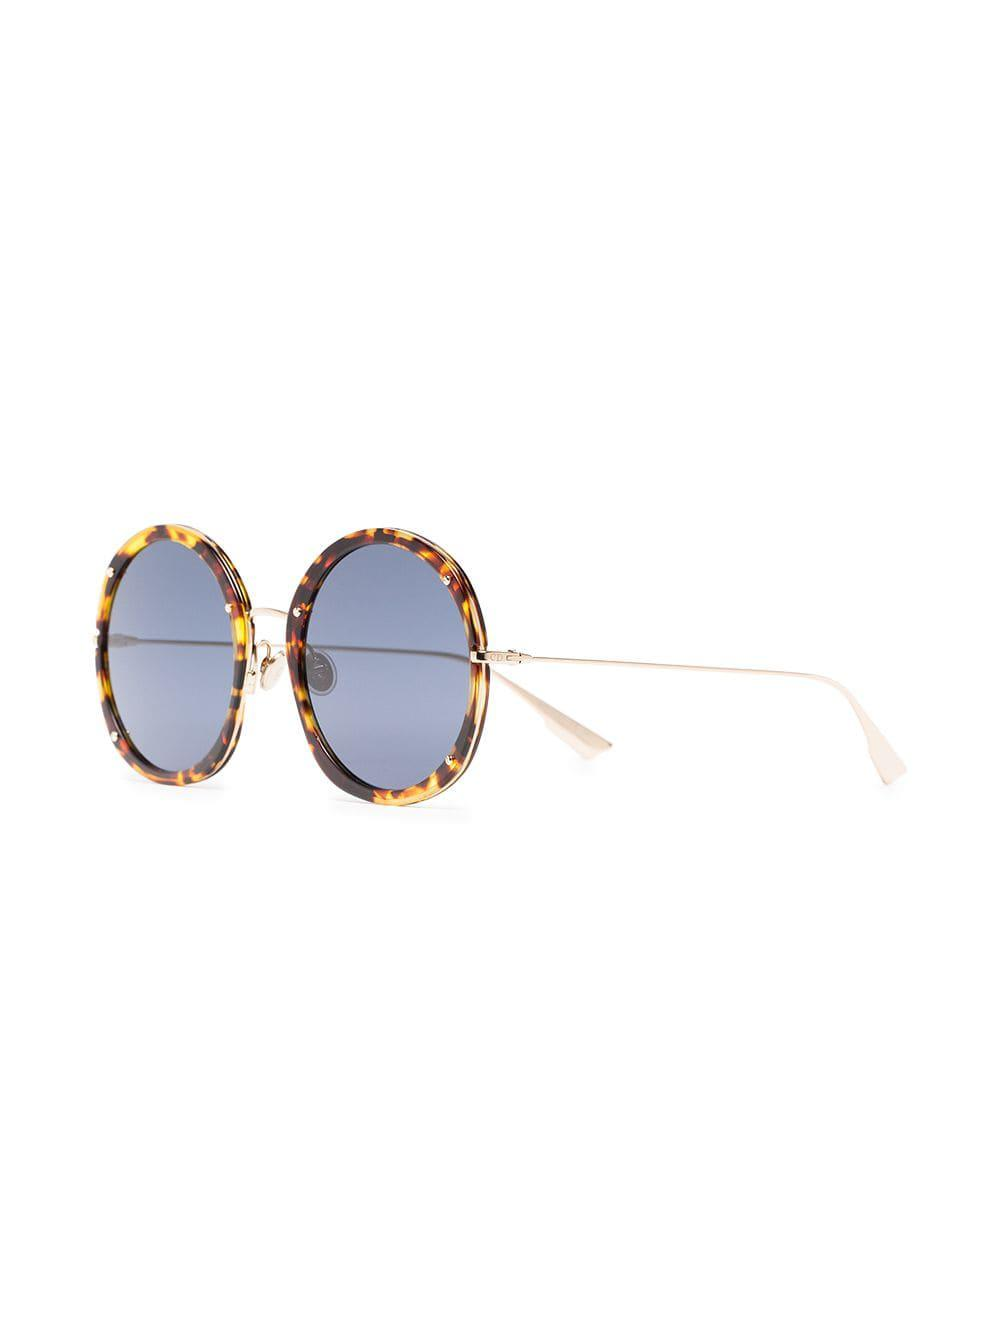 64cda6d7458 Dior Yellow And Black 56 Round Metallic Sunglasses in Brown - Lyst